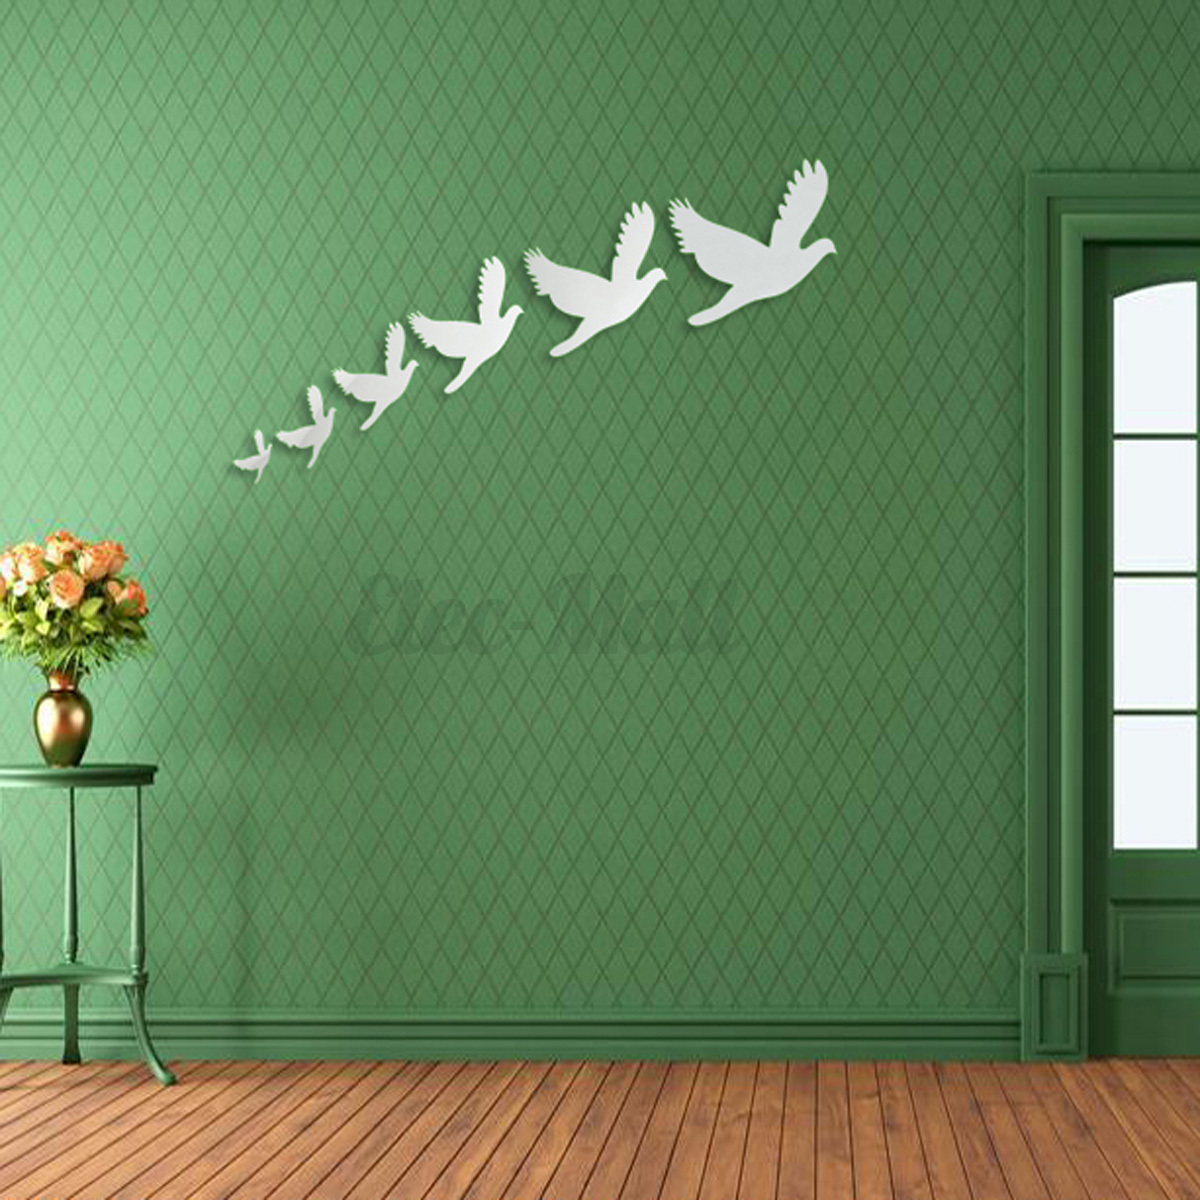 removable diy 3d mirror surface wall stickers mural art living room home decor ebay. Black Bedroom Furniture Sets. Home Design Ideas